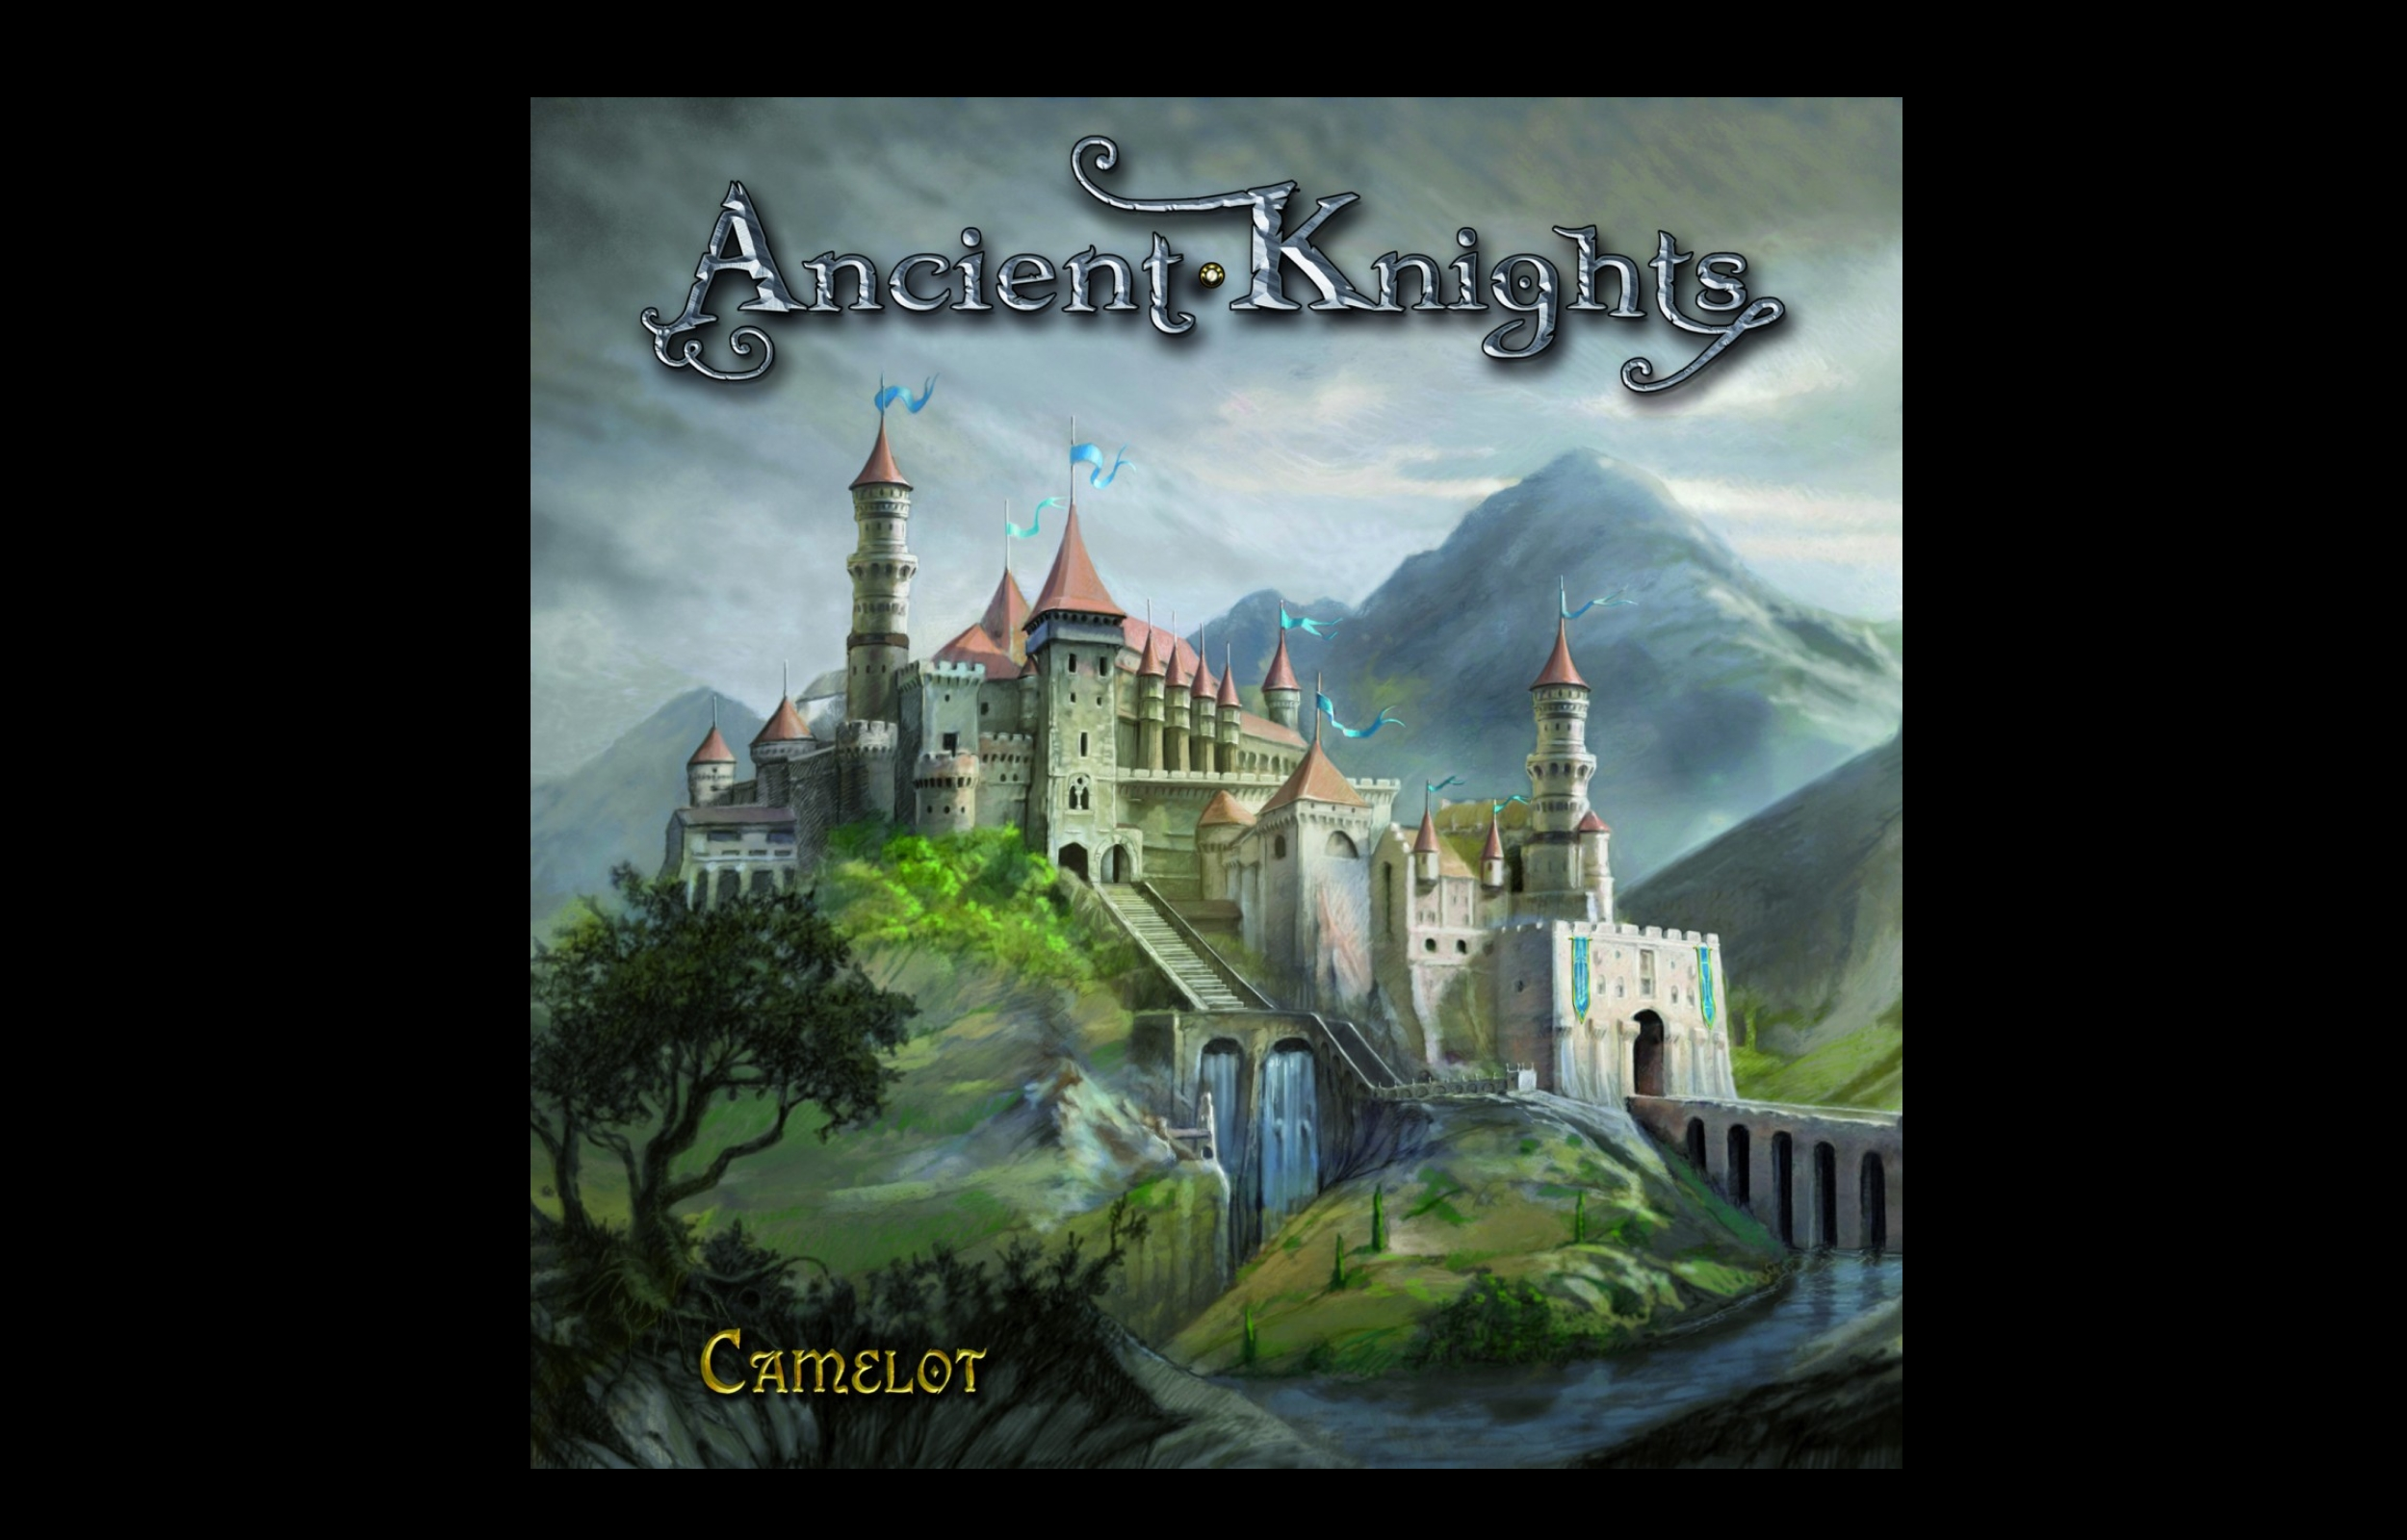 ANCIENT KNIGHTS: video-trailer del brano CAMELOT cantato da FABIO LIONE